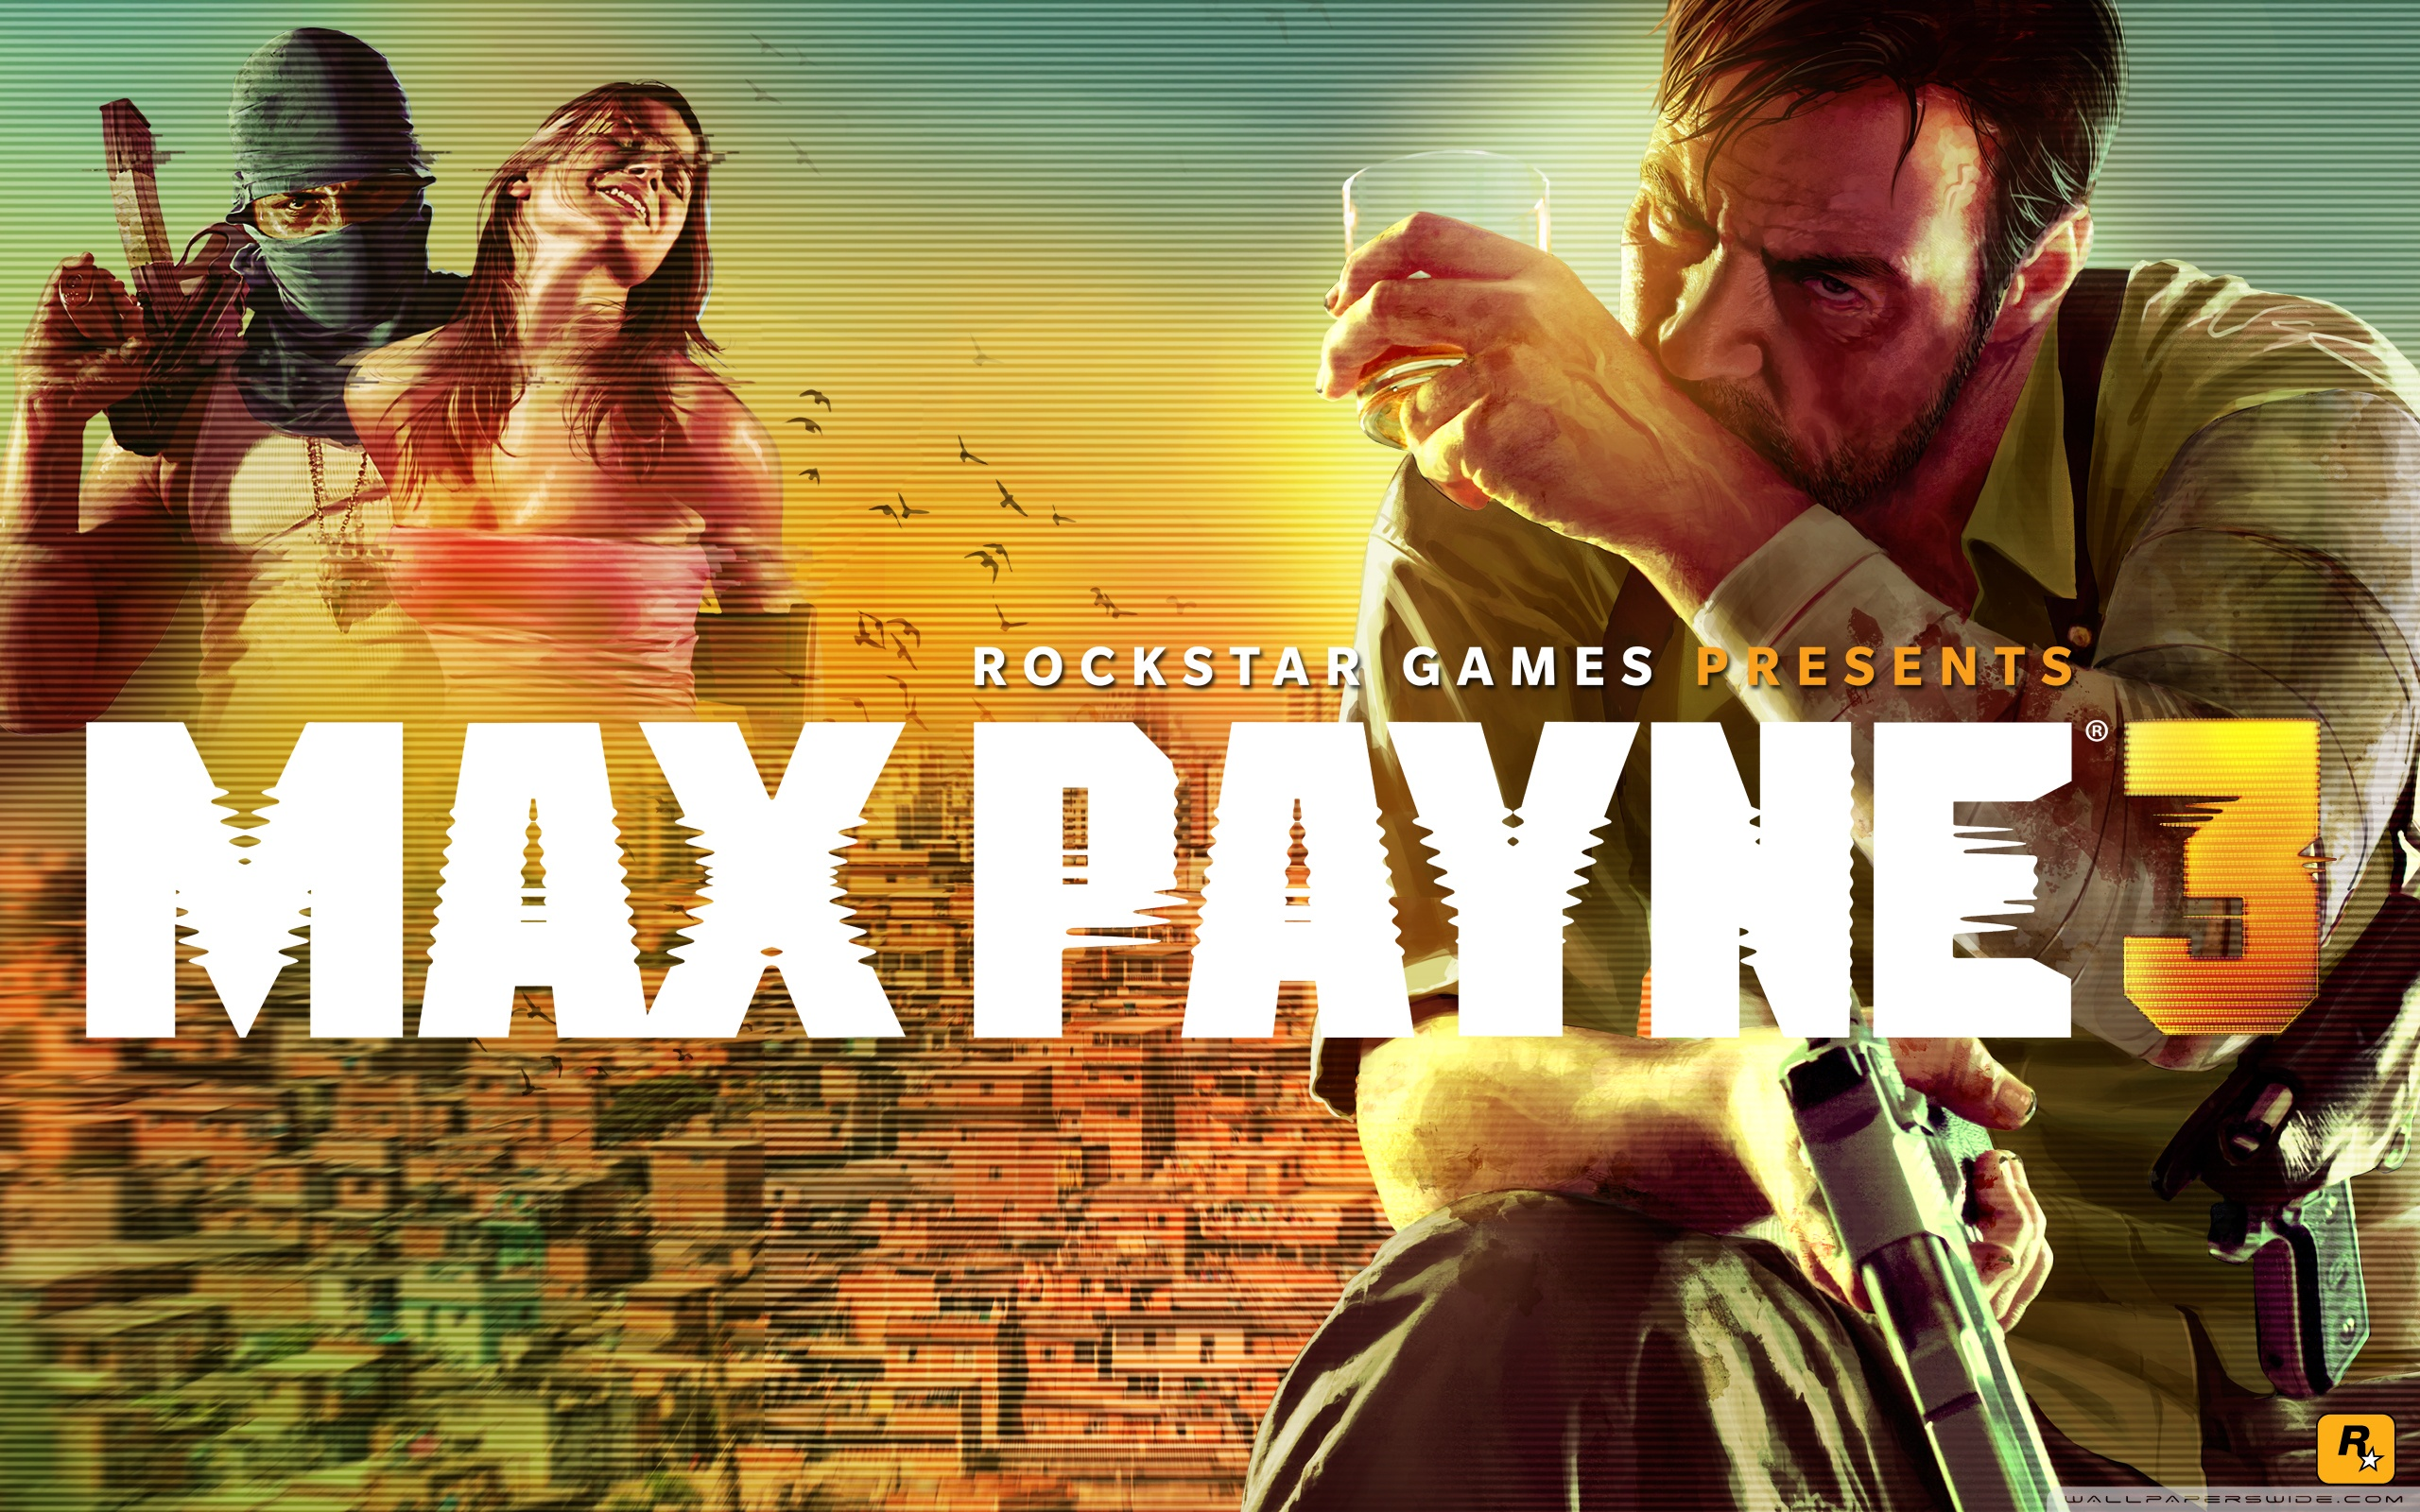 Max Payne 3 Hd Wide Wallpaper For 4k Uhd Widescreen - Max Payne 3 Wallpaper Hd , HD Wallpaper & Backgrounds